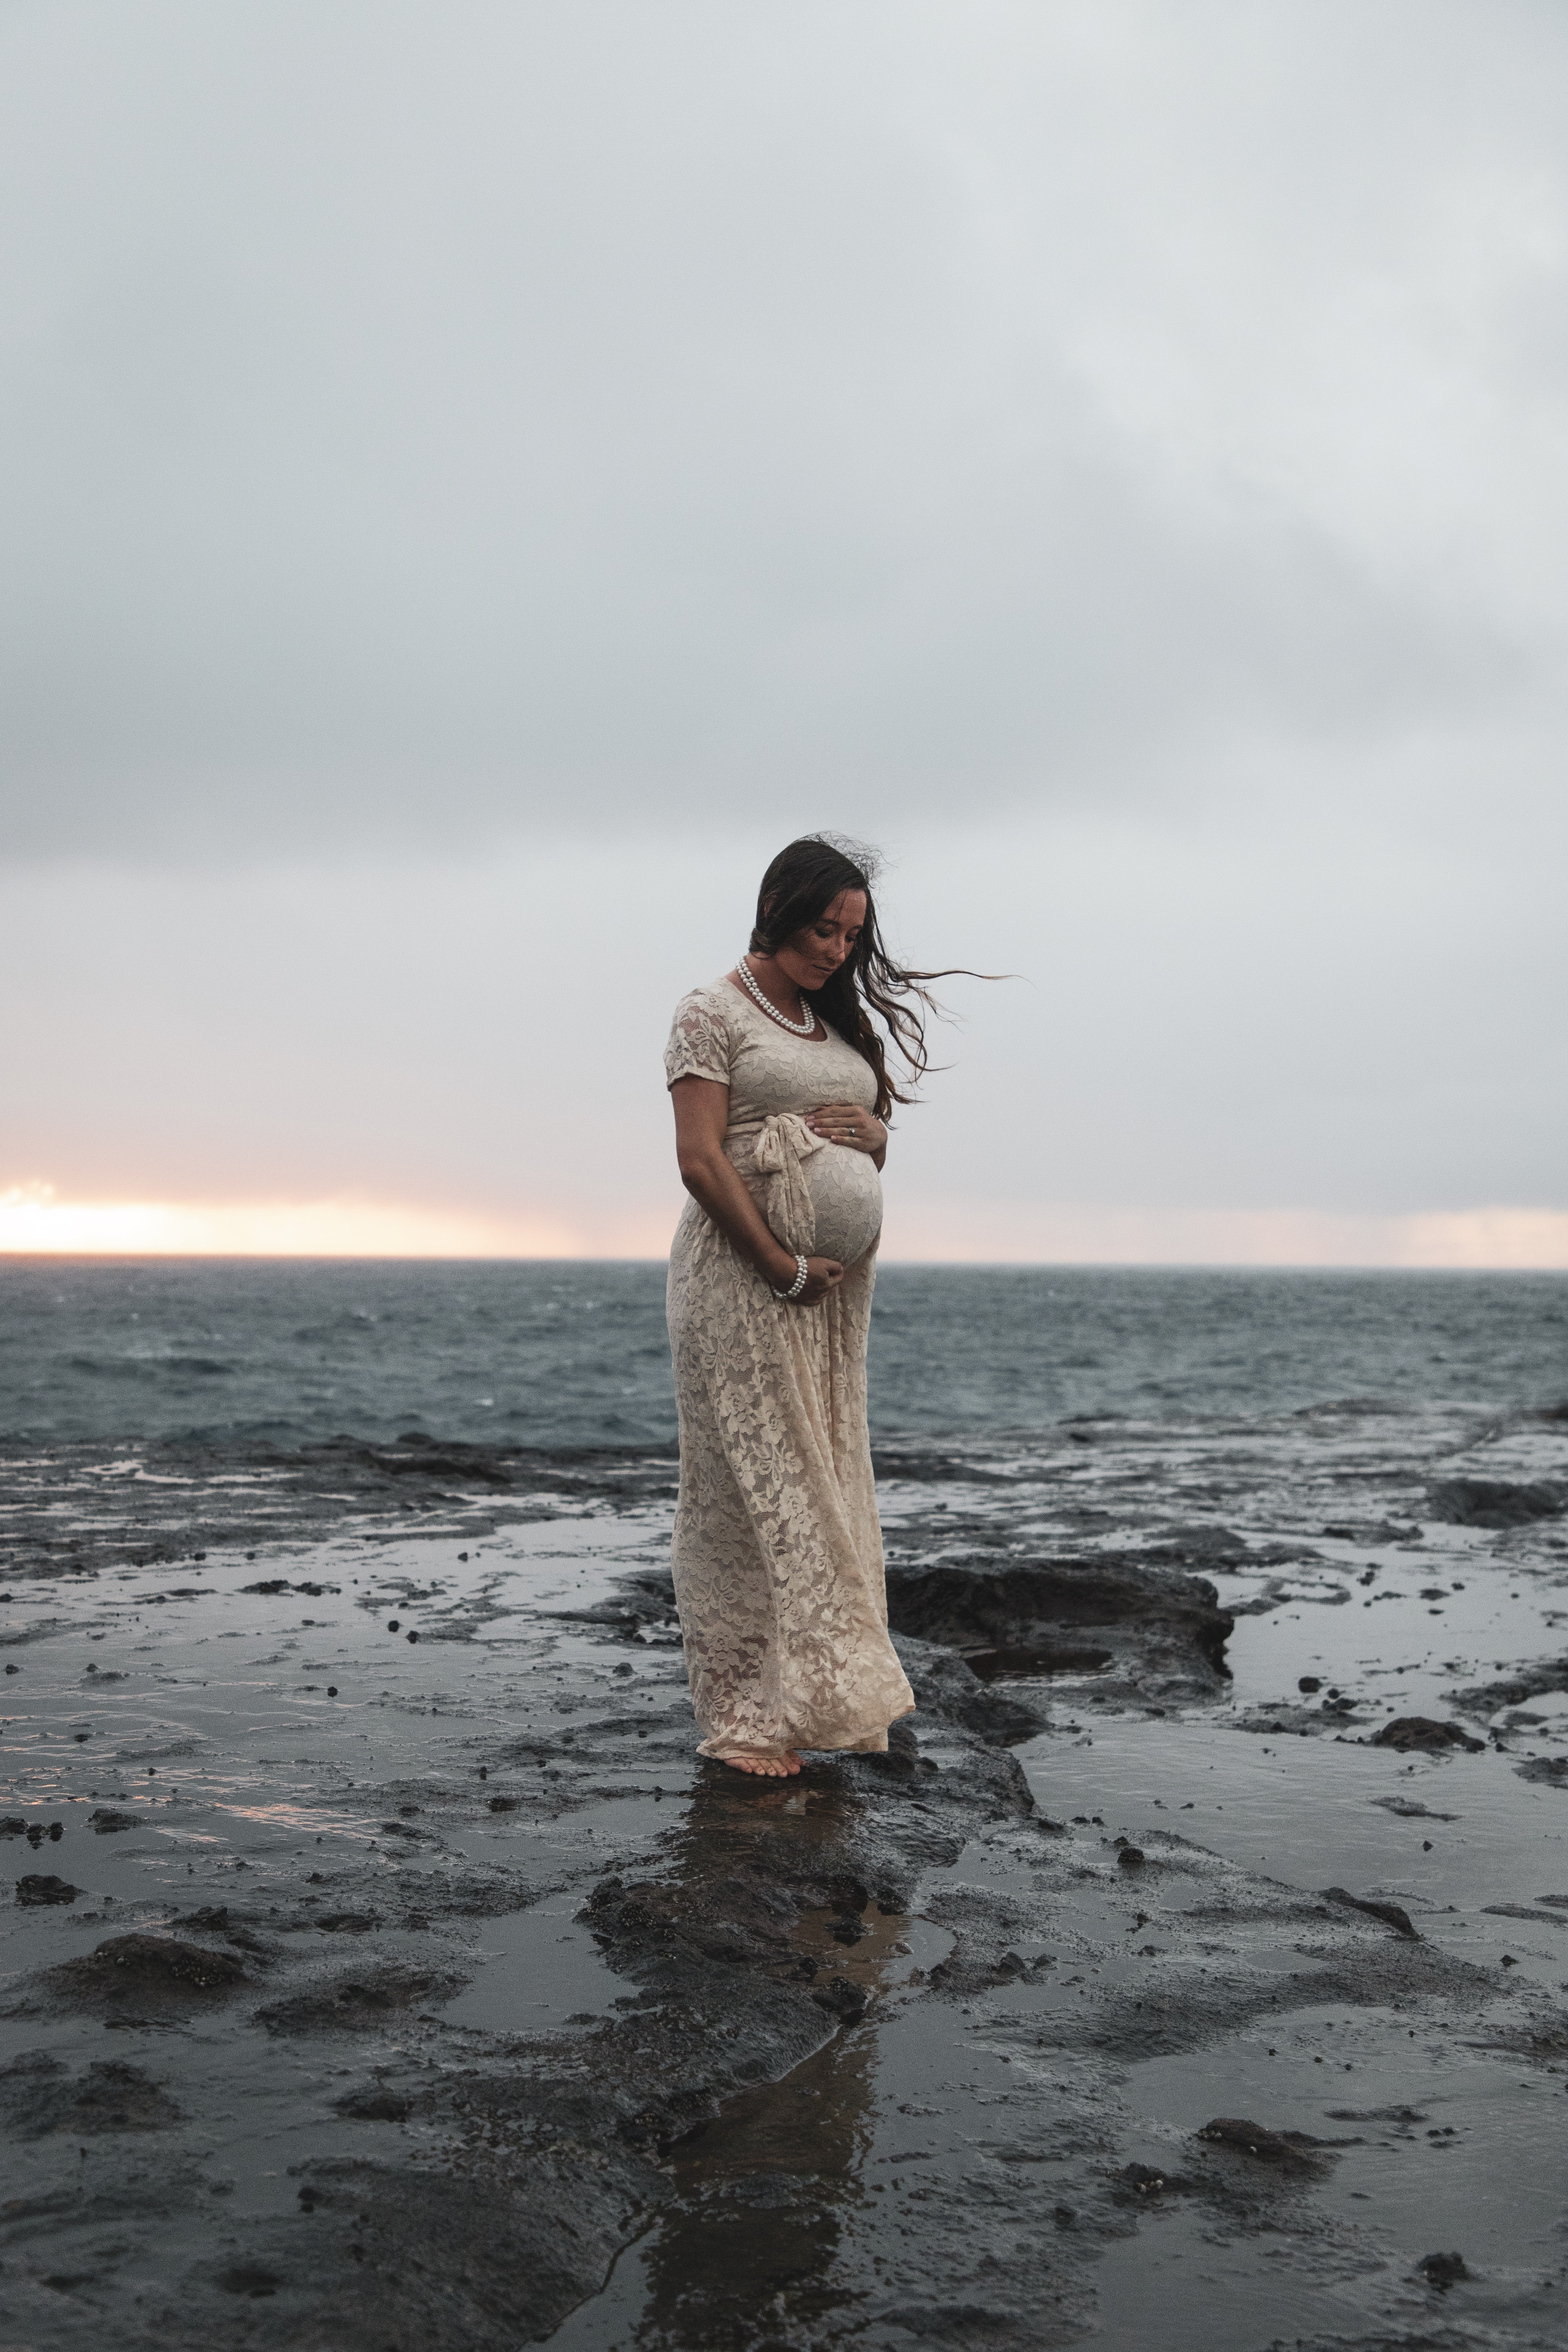 woman standing rock under gray sky